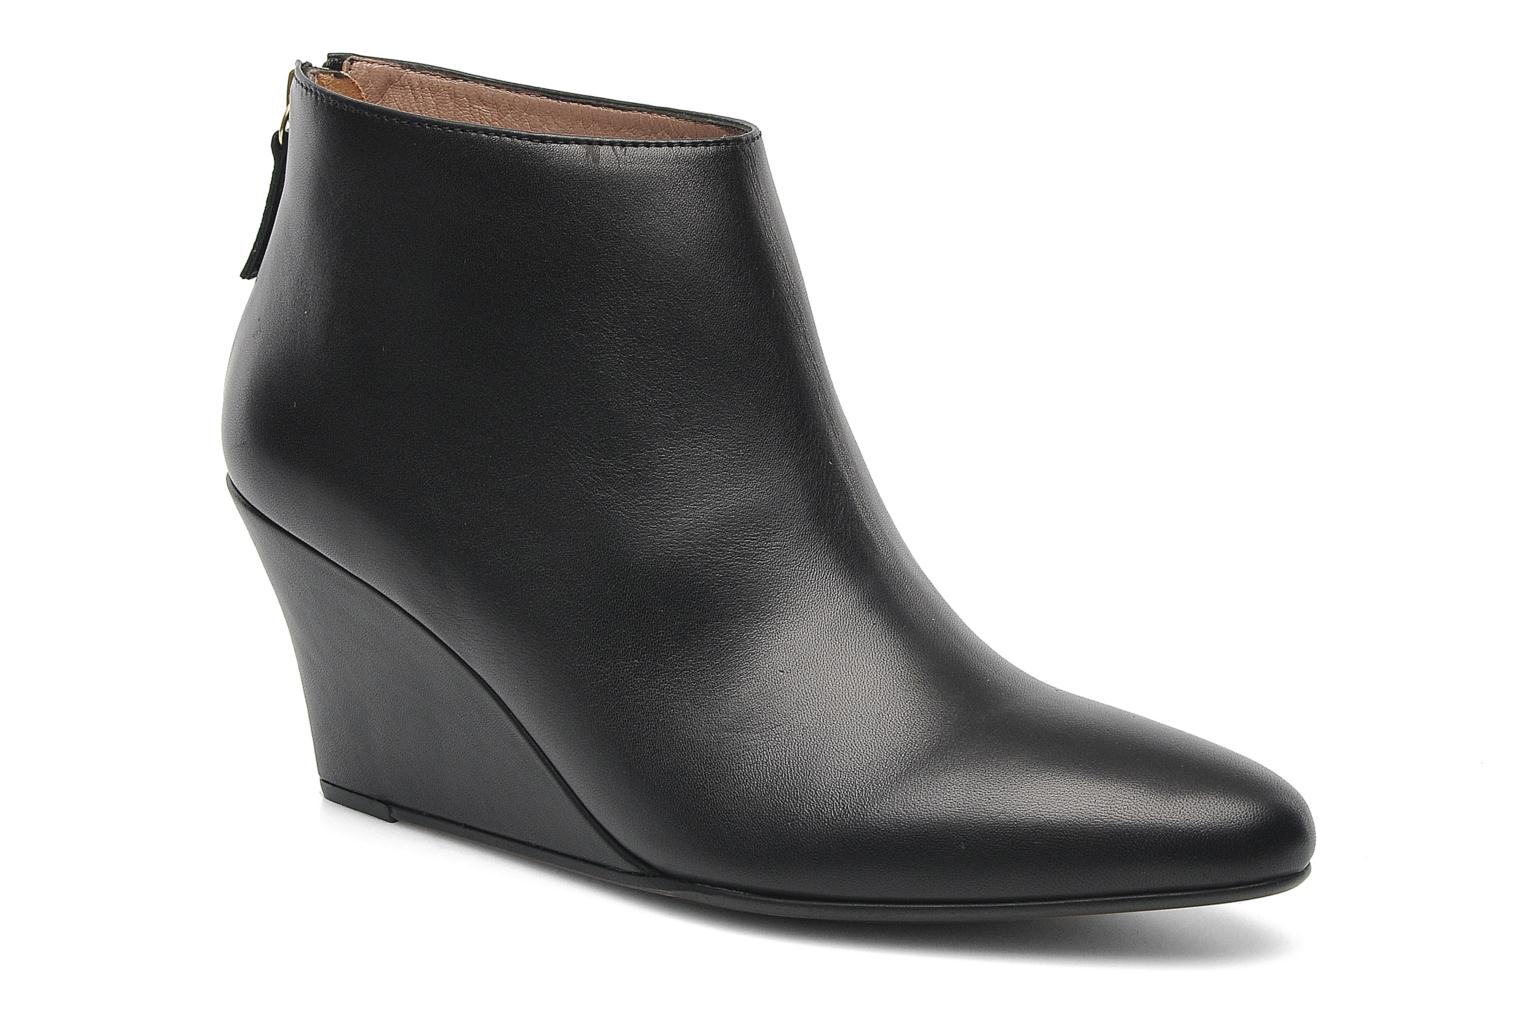 Marques Chaussure luxe femme Avril Gau femme Loty Veau Noir